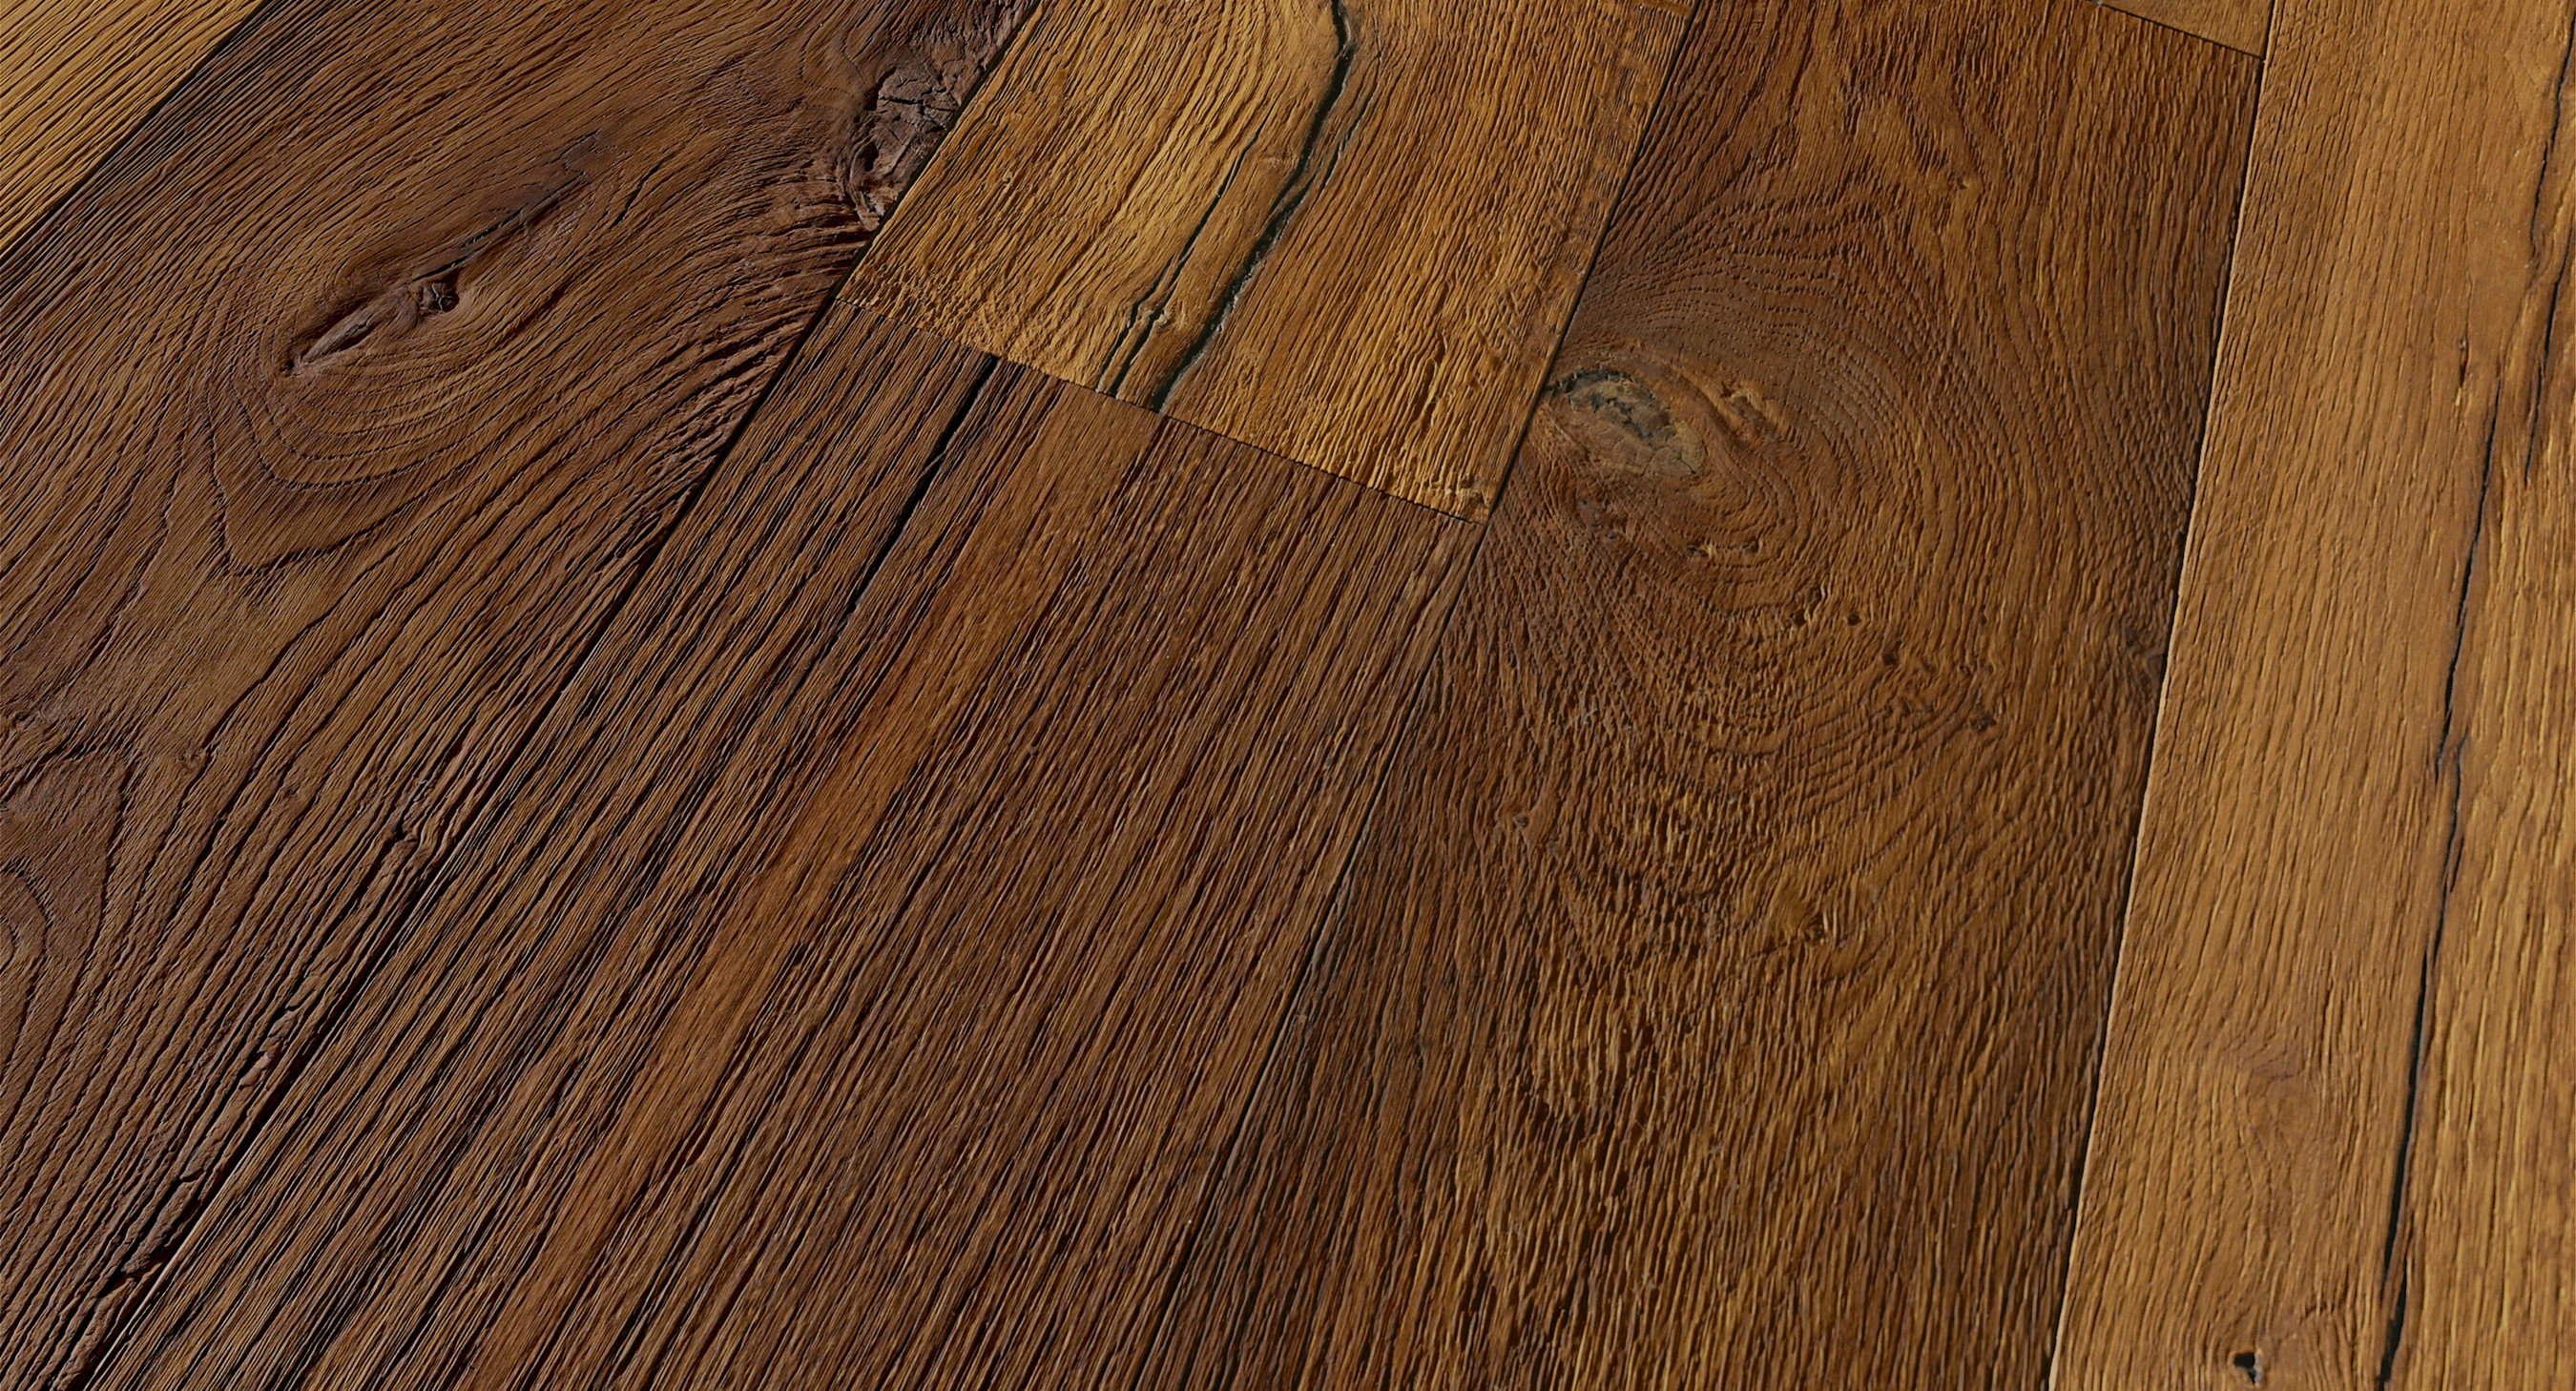 hardwood flooring business of trendtime engineered wood flooring products parador intended for 45a